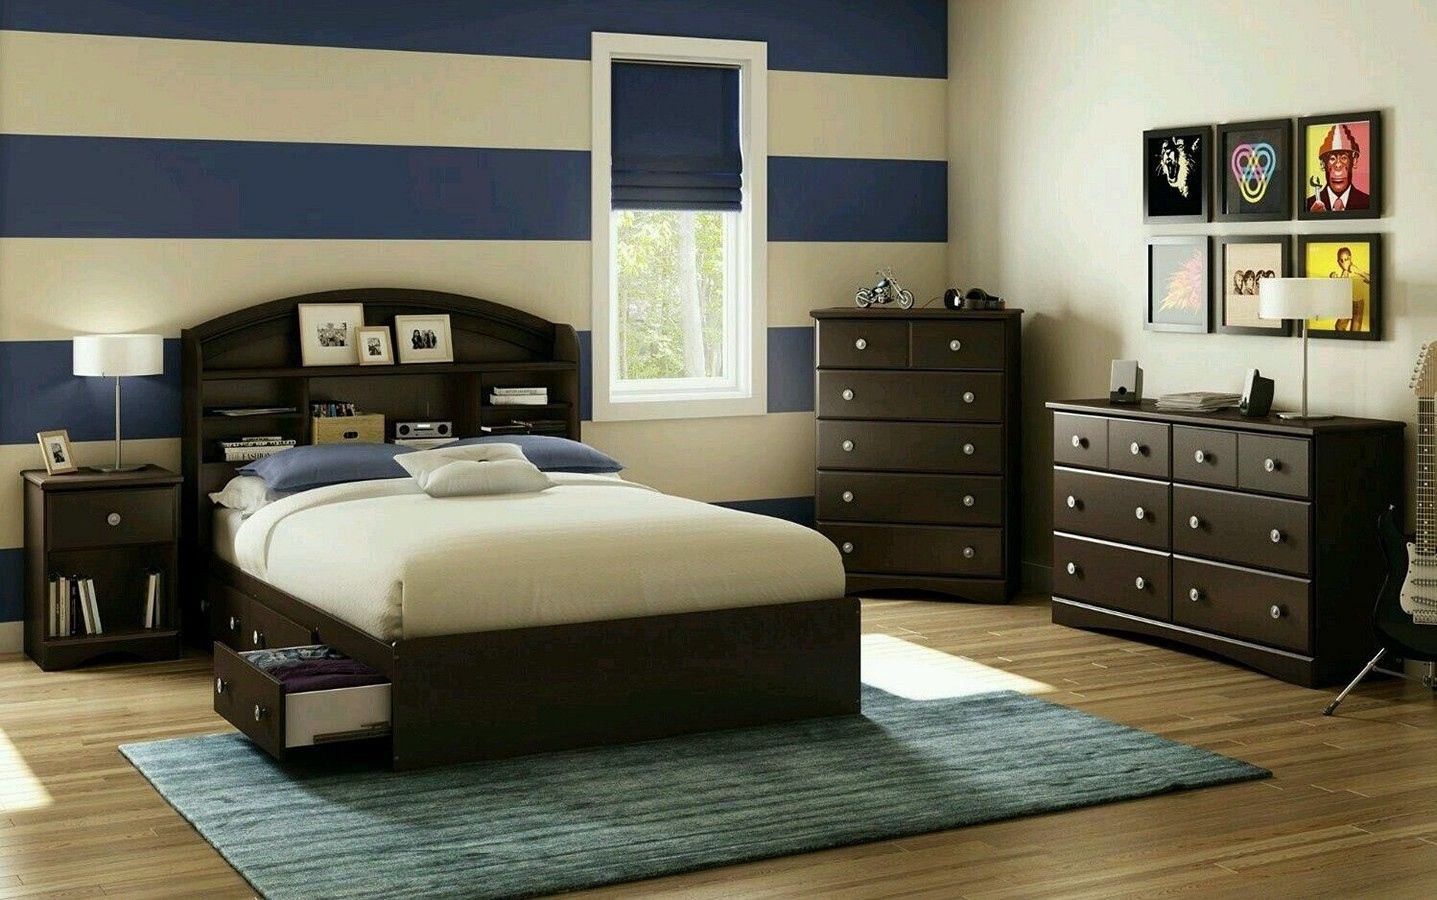 Merveilleux 100+ Mens Bedroom Designs Small Space   Best Interior Paint Colors Check  More At Http